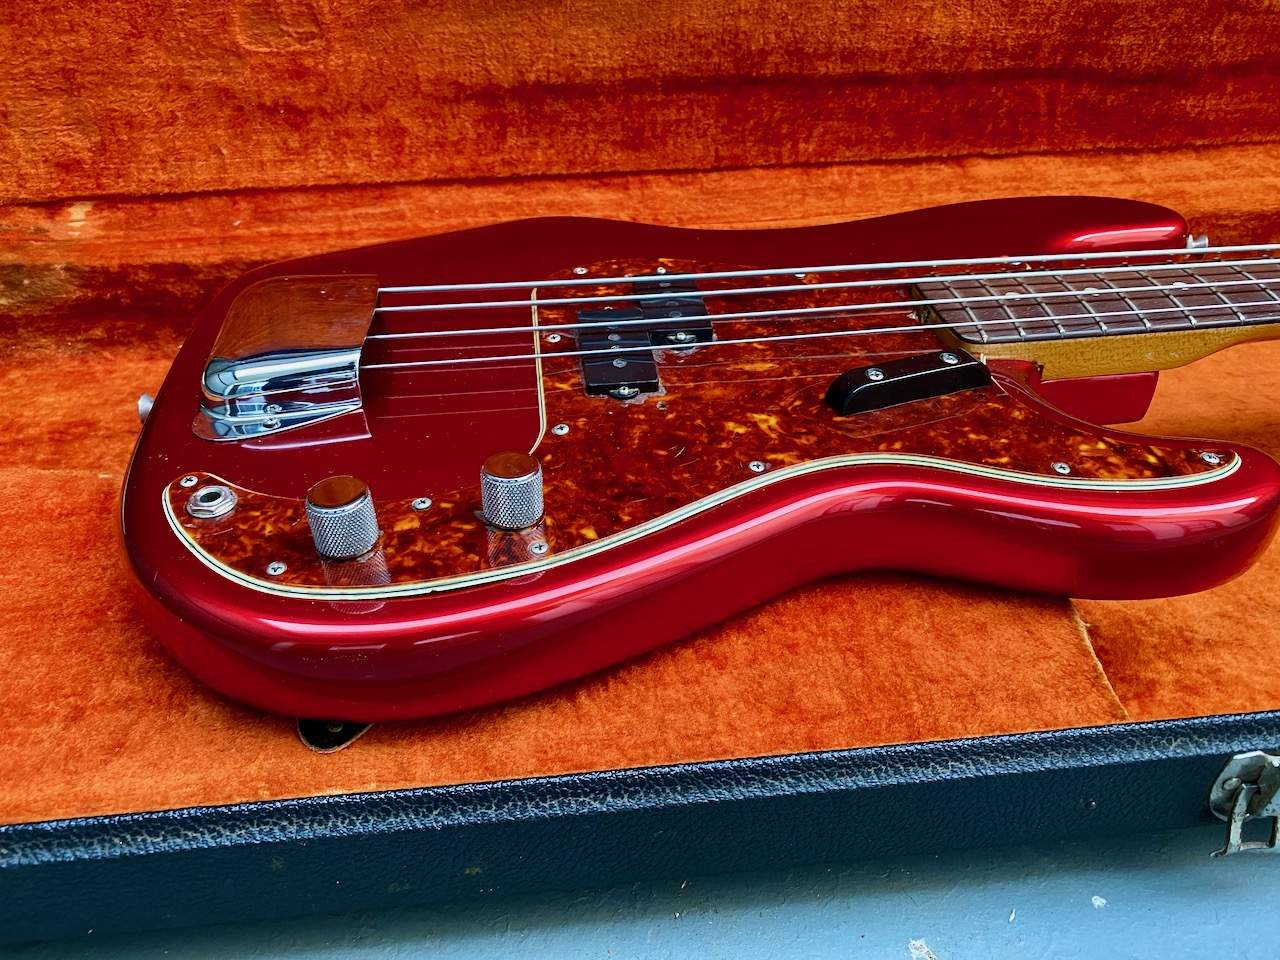 1965 Fender Precision Candy Apple Red - 39.jpeg